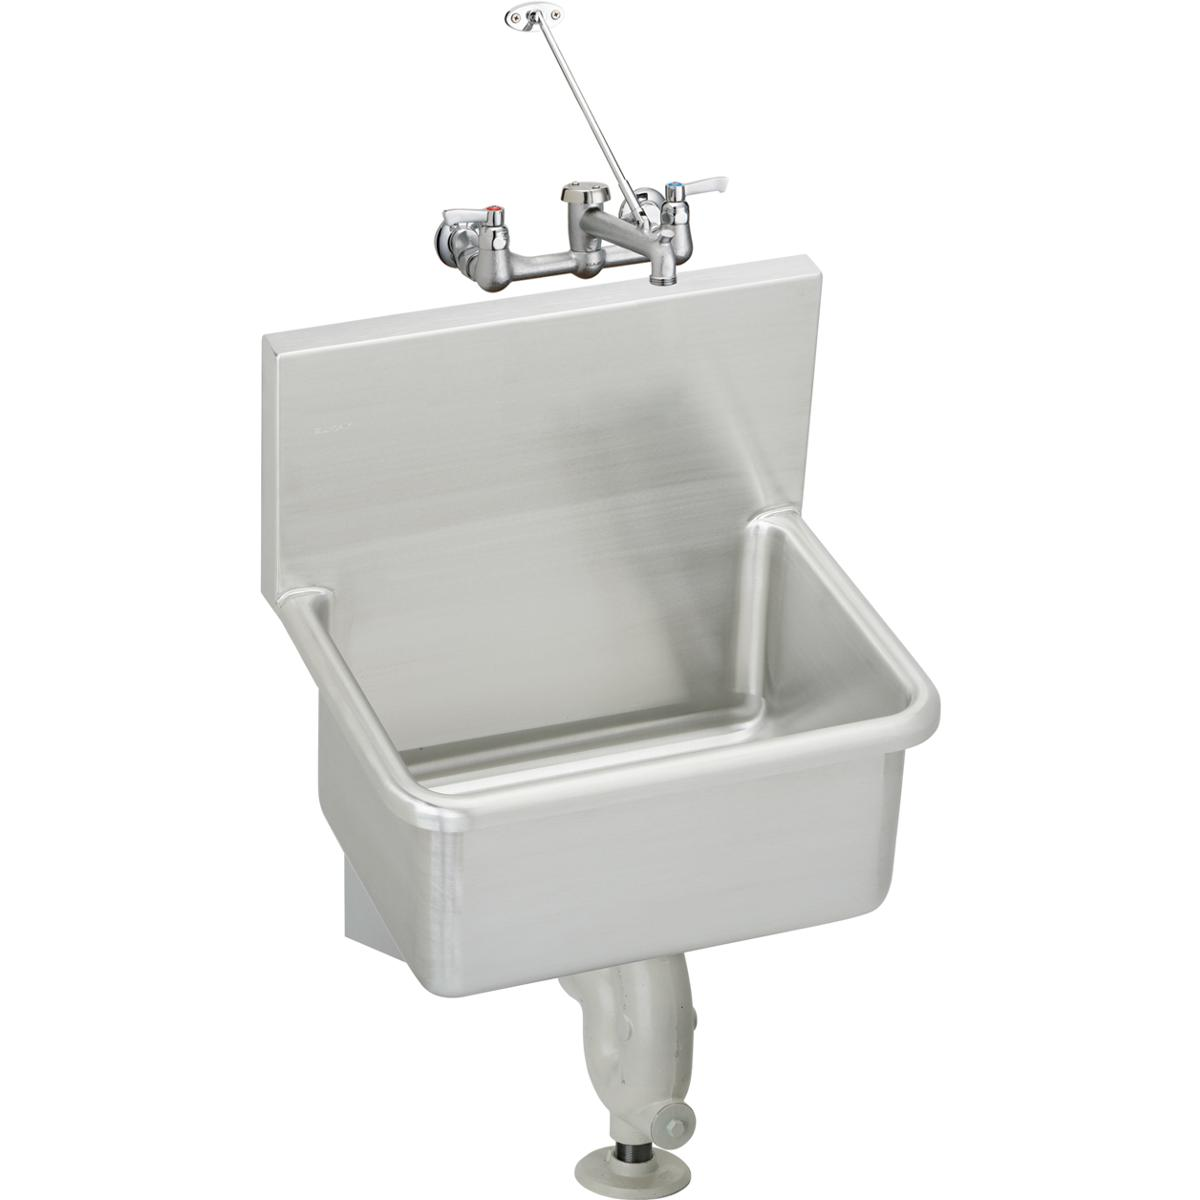 Utility, Service and Laundry Tub Sinks